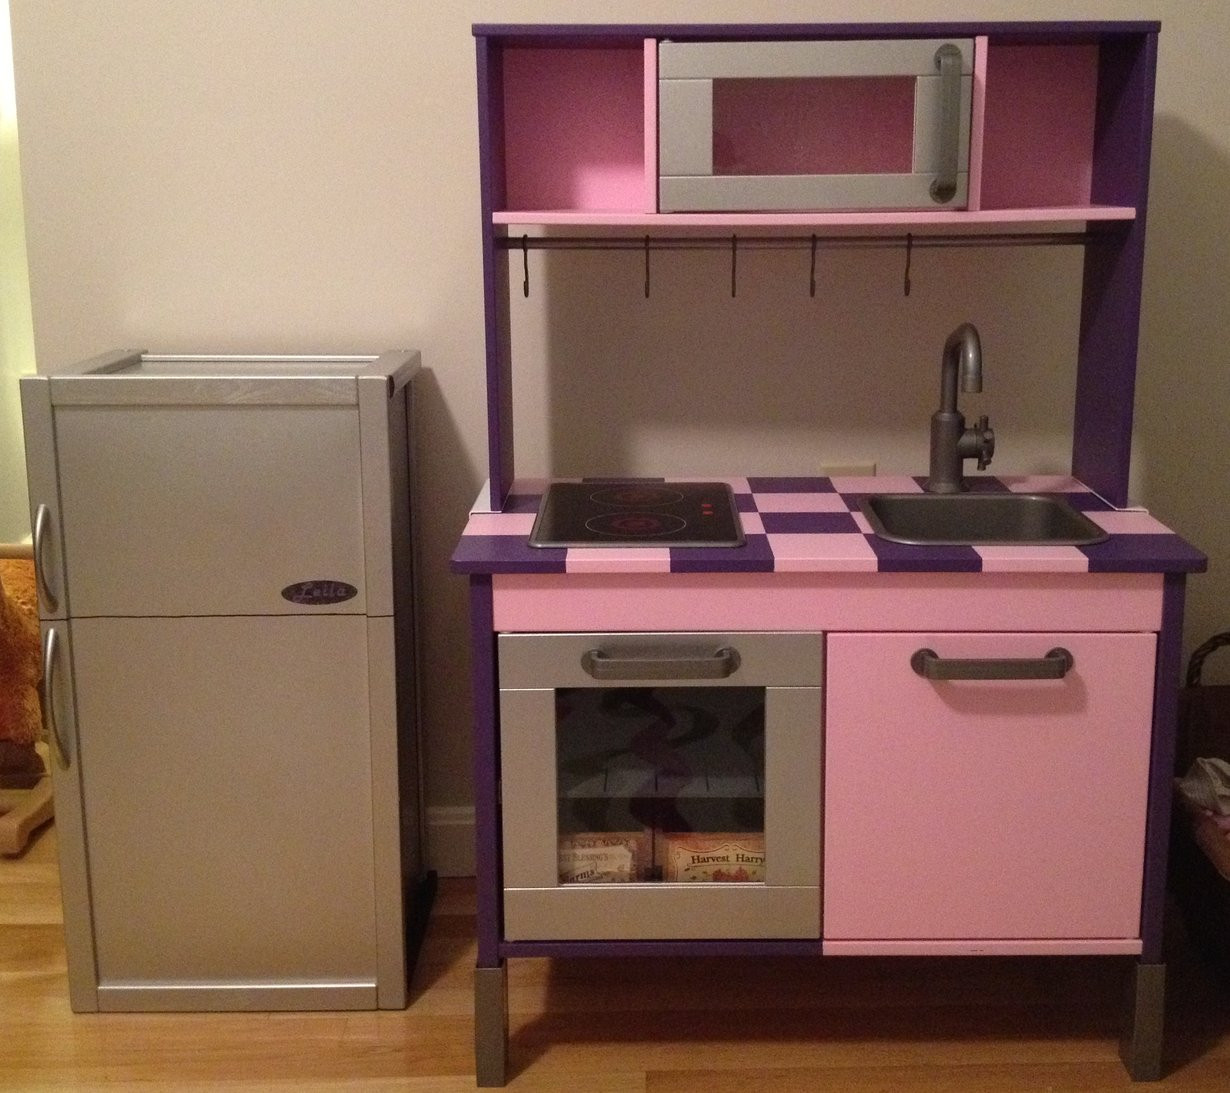 Duktig Kitchen Goes from Bland to Bling - IKEA Hackers